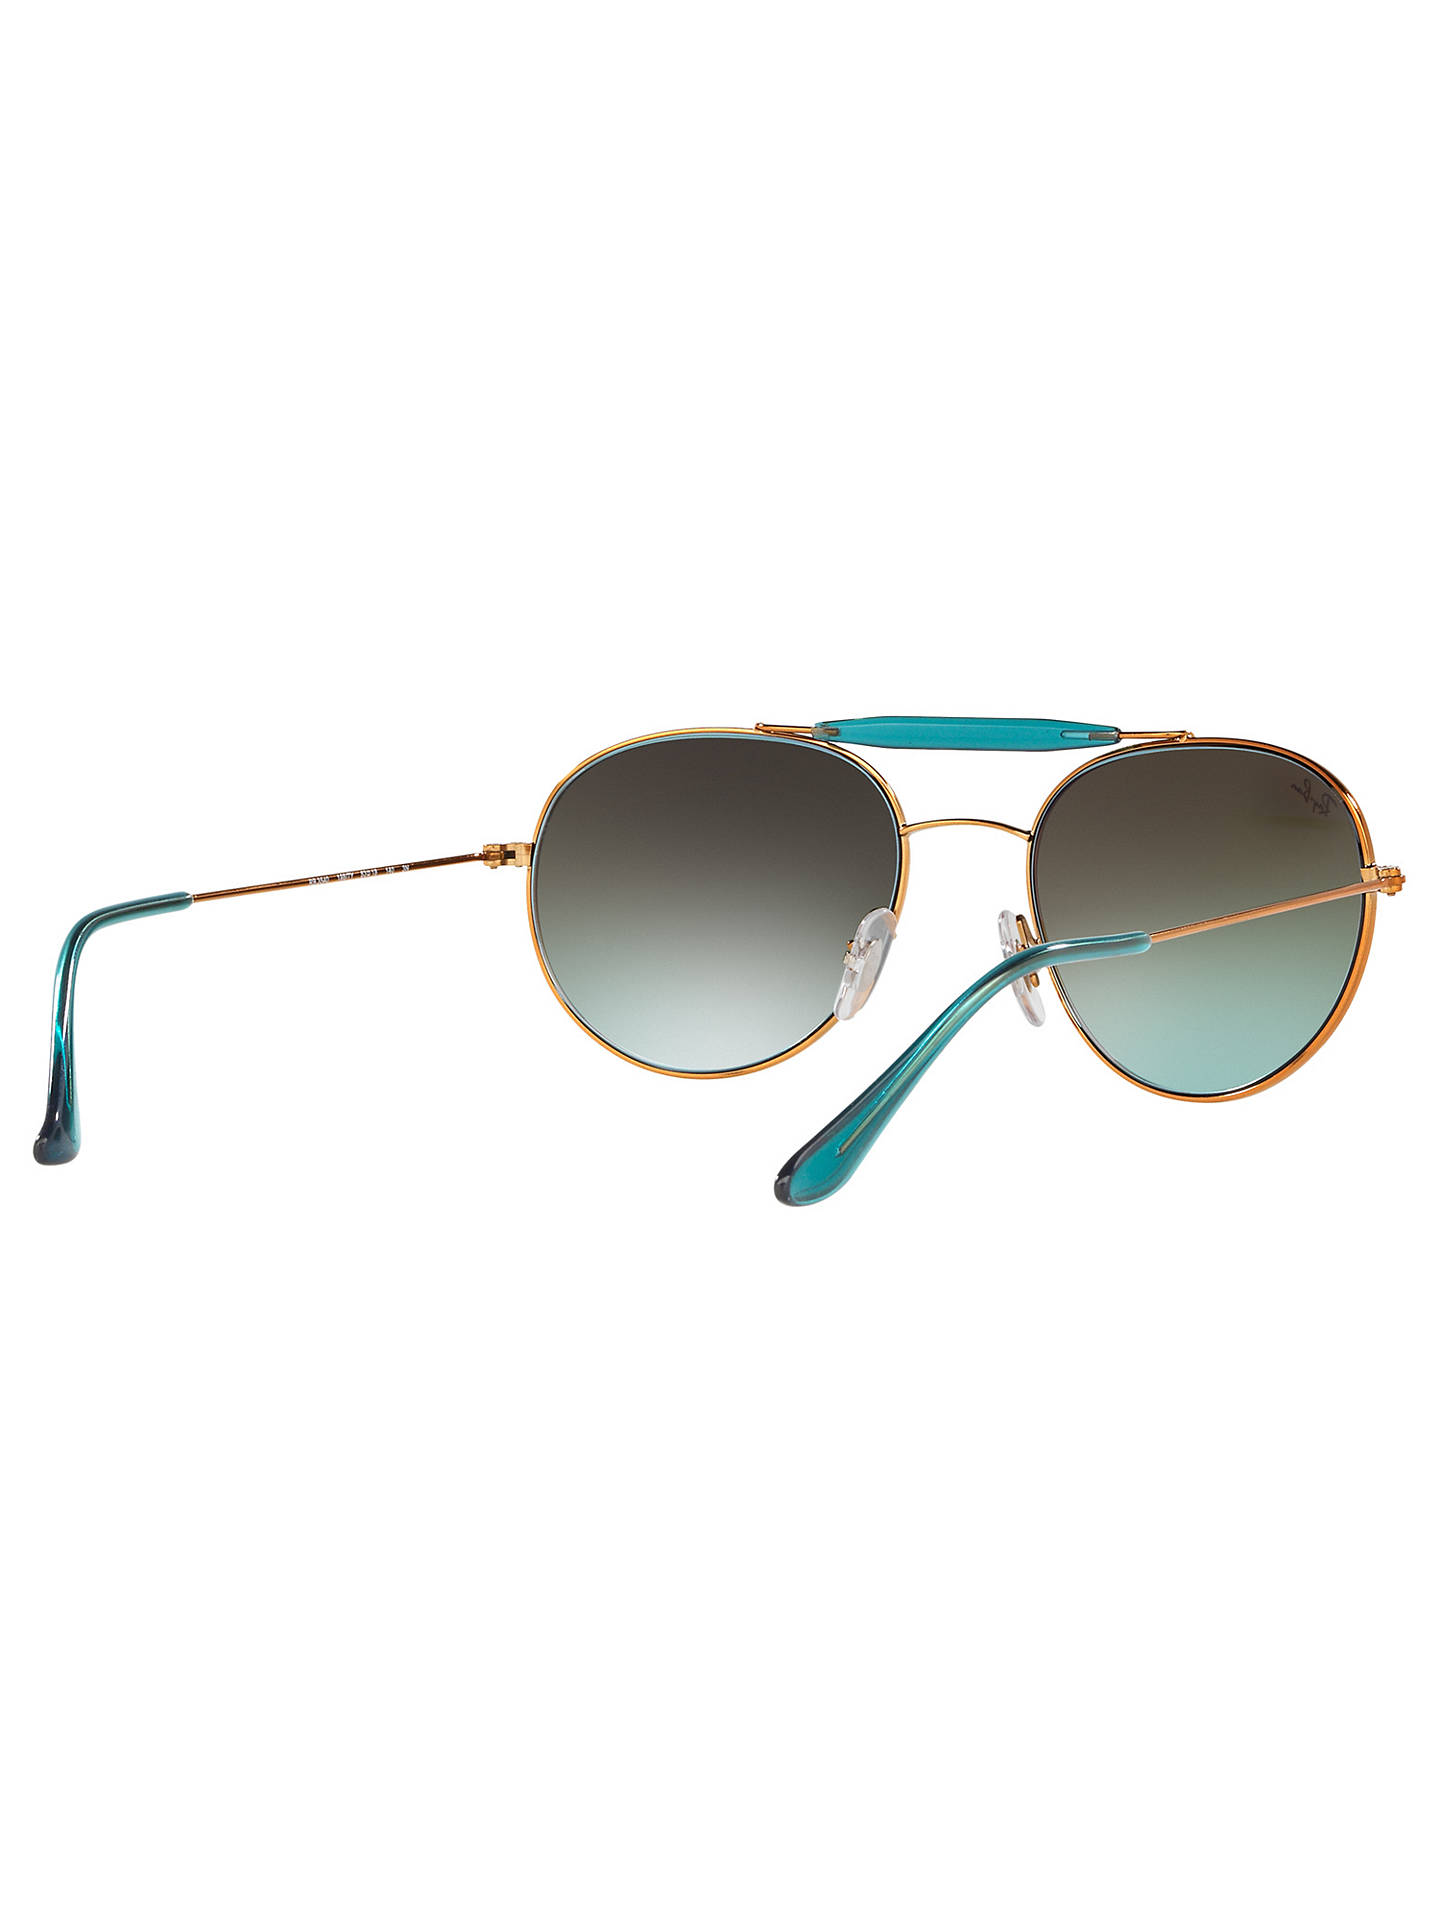 Buy Ray-Ban RB3540 Oval Sunglasses, Bronze/Pink Online at johnlewis.com